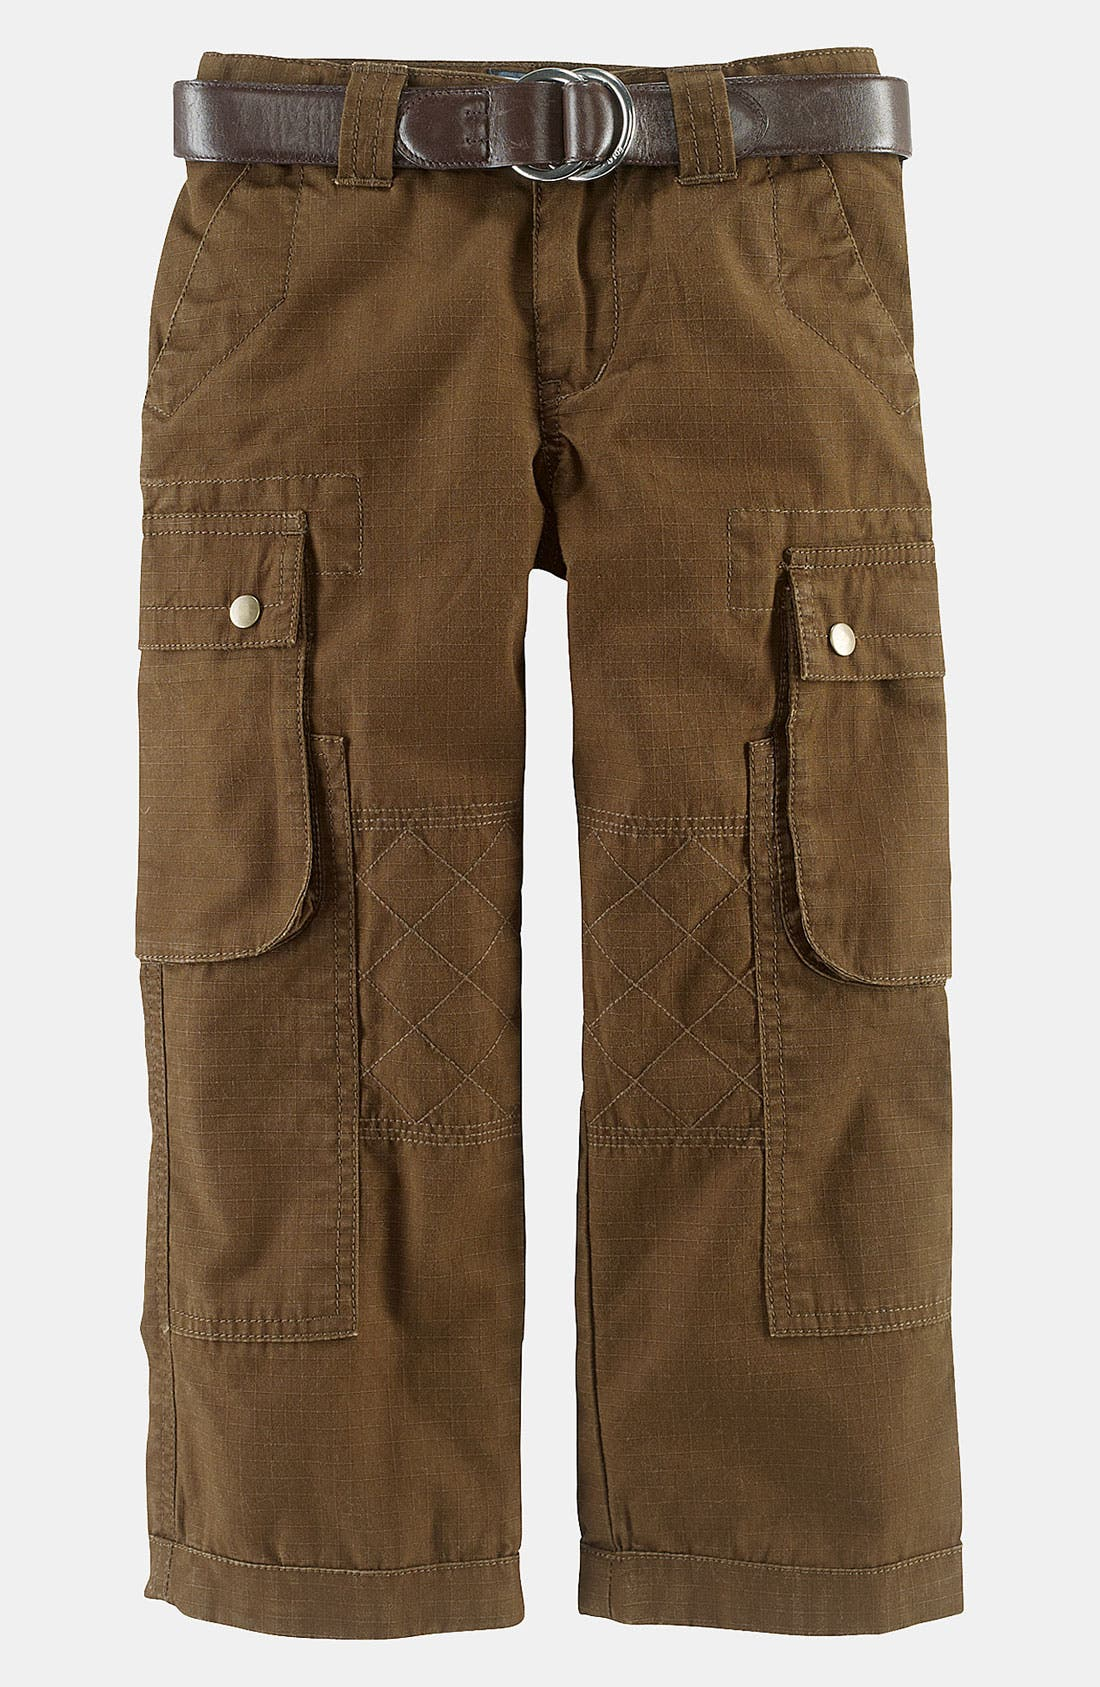 Alternate Image 1 Selected - Ralph Lauren Cargo Pants (Toddler)